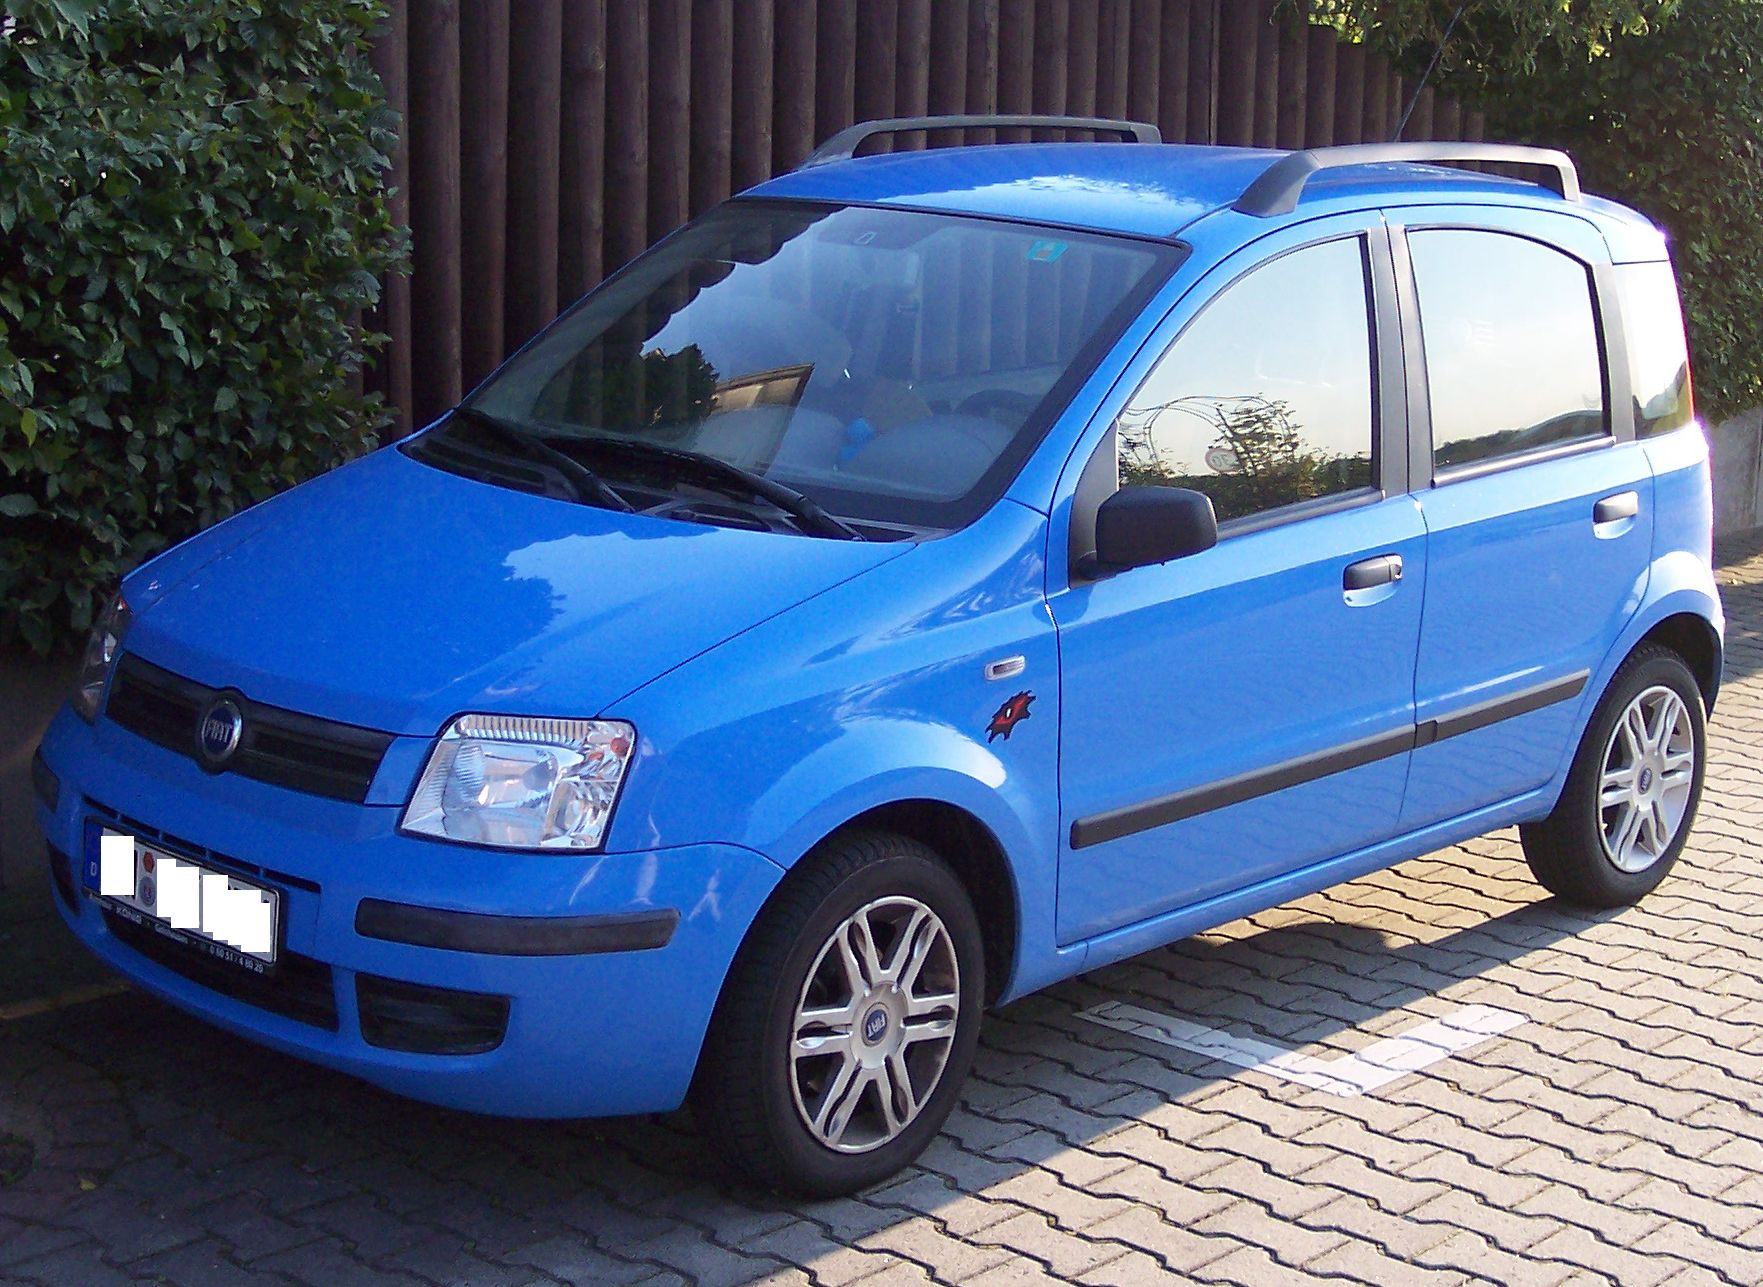 File Fiat Panda 2005 Vl Blue Jpg Wikimedia Commons